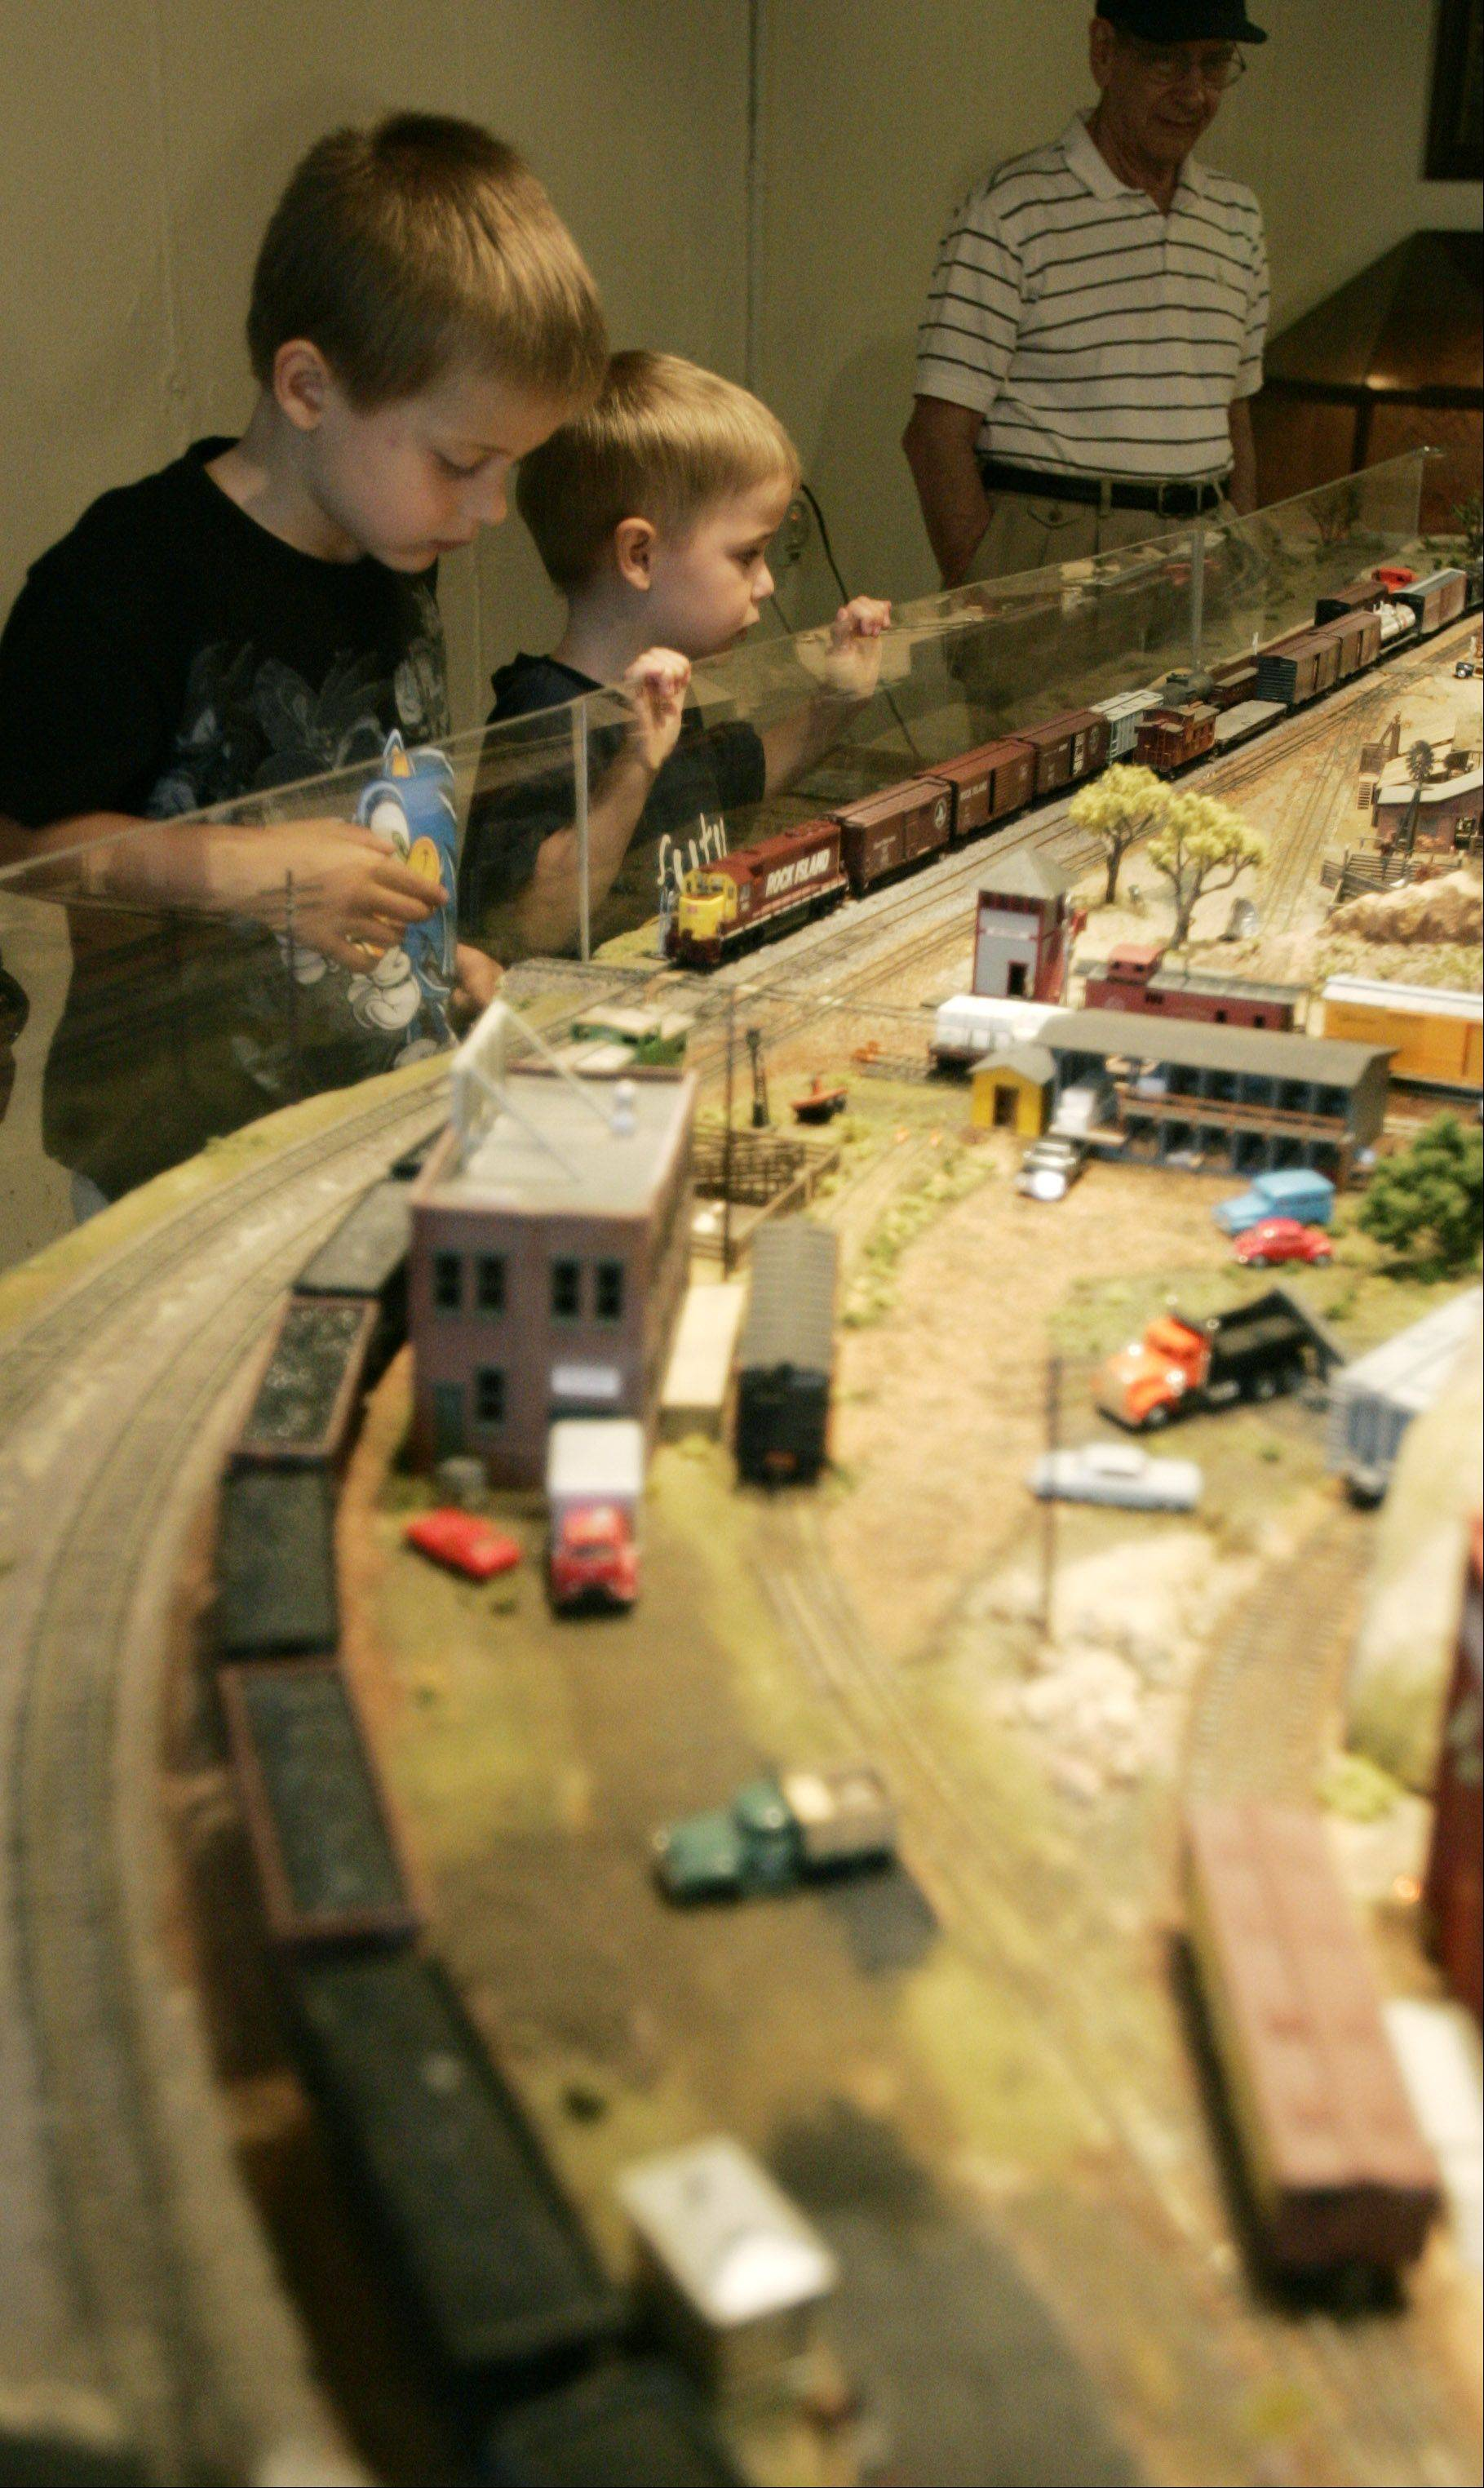 The young and young-at-heart can enjoy the HO-gauge model railroad display in the basement of the Netzley Yender House throughout Depot Days.